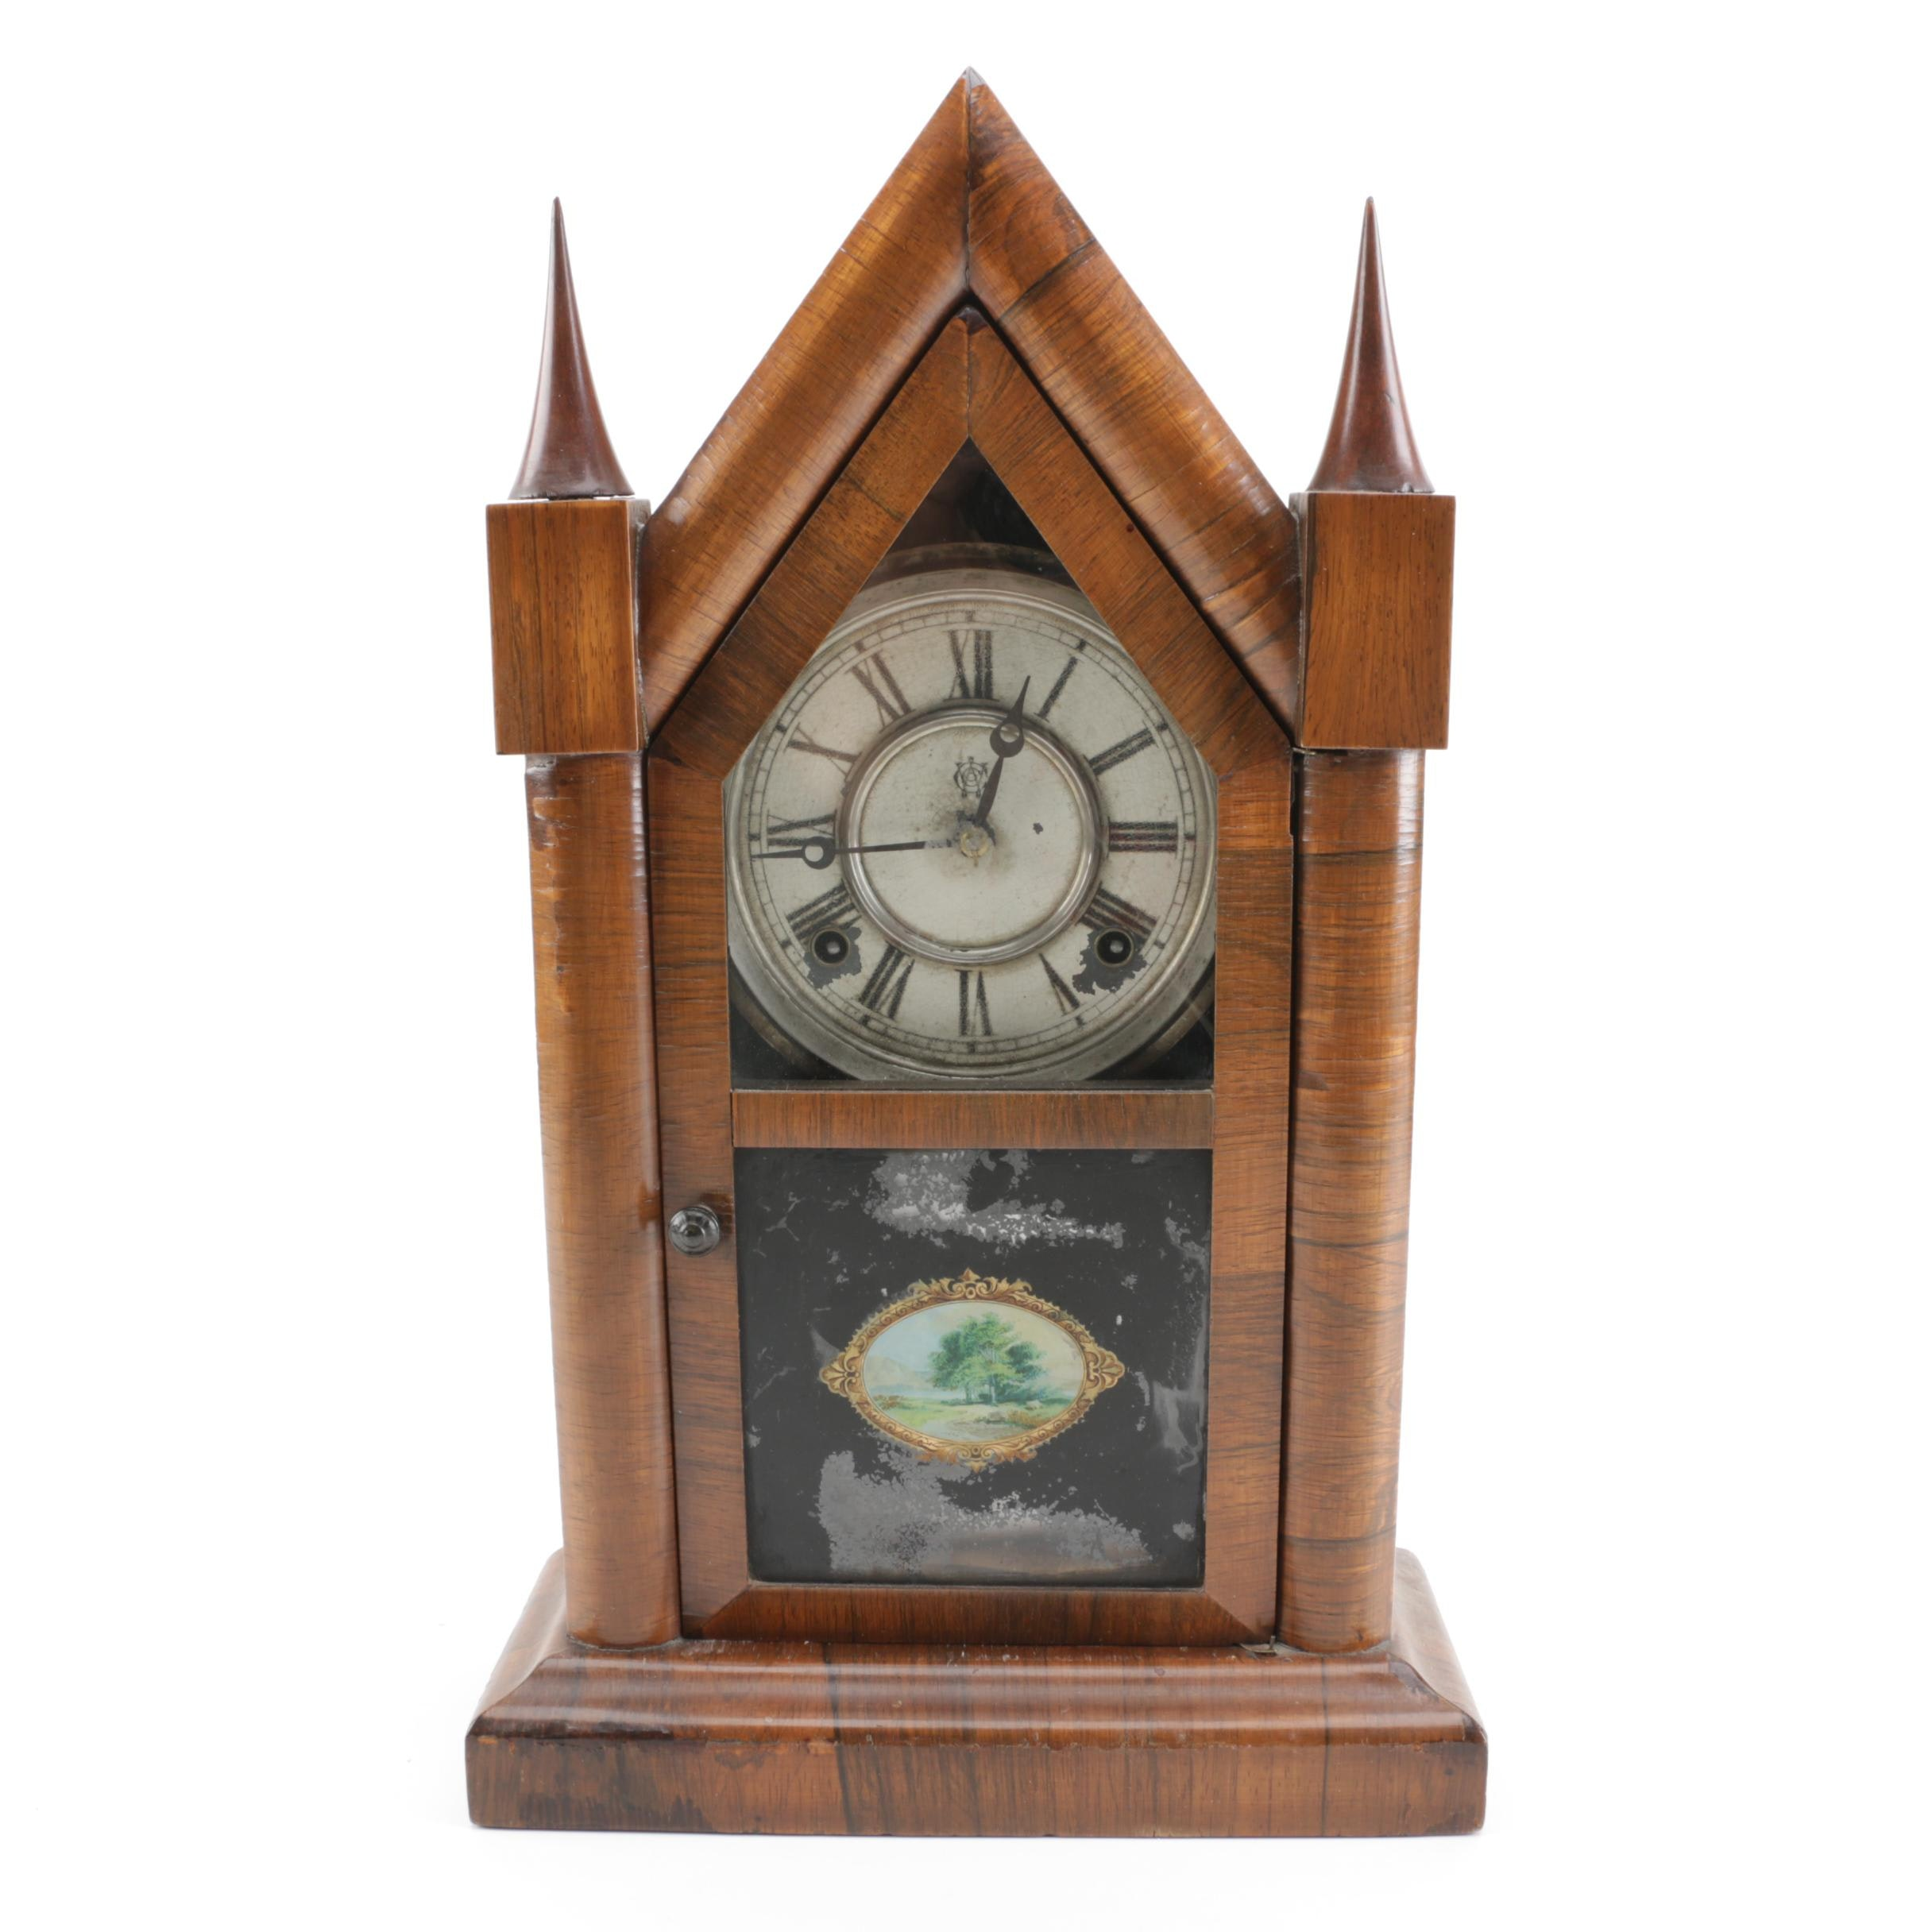 19th Century Waterbury Clock Co. Steeple Mantel Clock